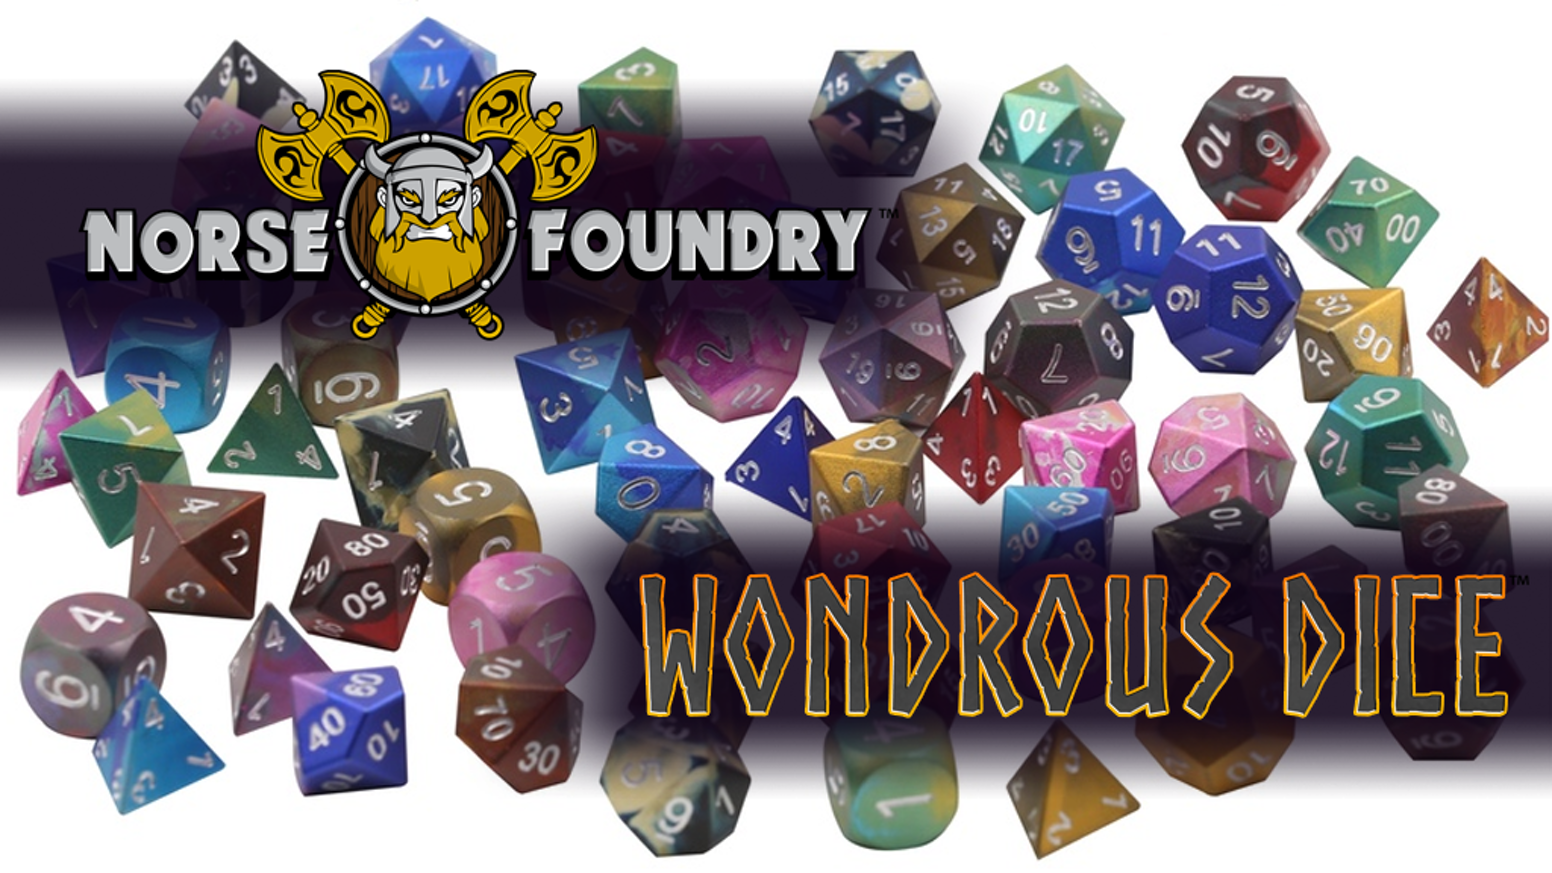 Wondrous Dice Precision 6061 Aluminum Multi Colored Dice By Norse Foundry Kickstarter Norse foundry rpg d20 adventure coins variety gold piece set of 10 zombies dead. wondrous dice precision 6061 aluminum